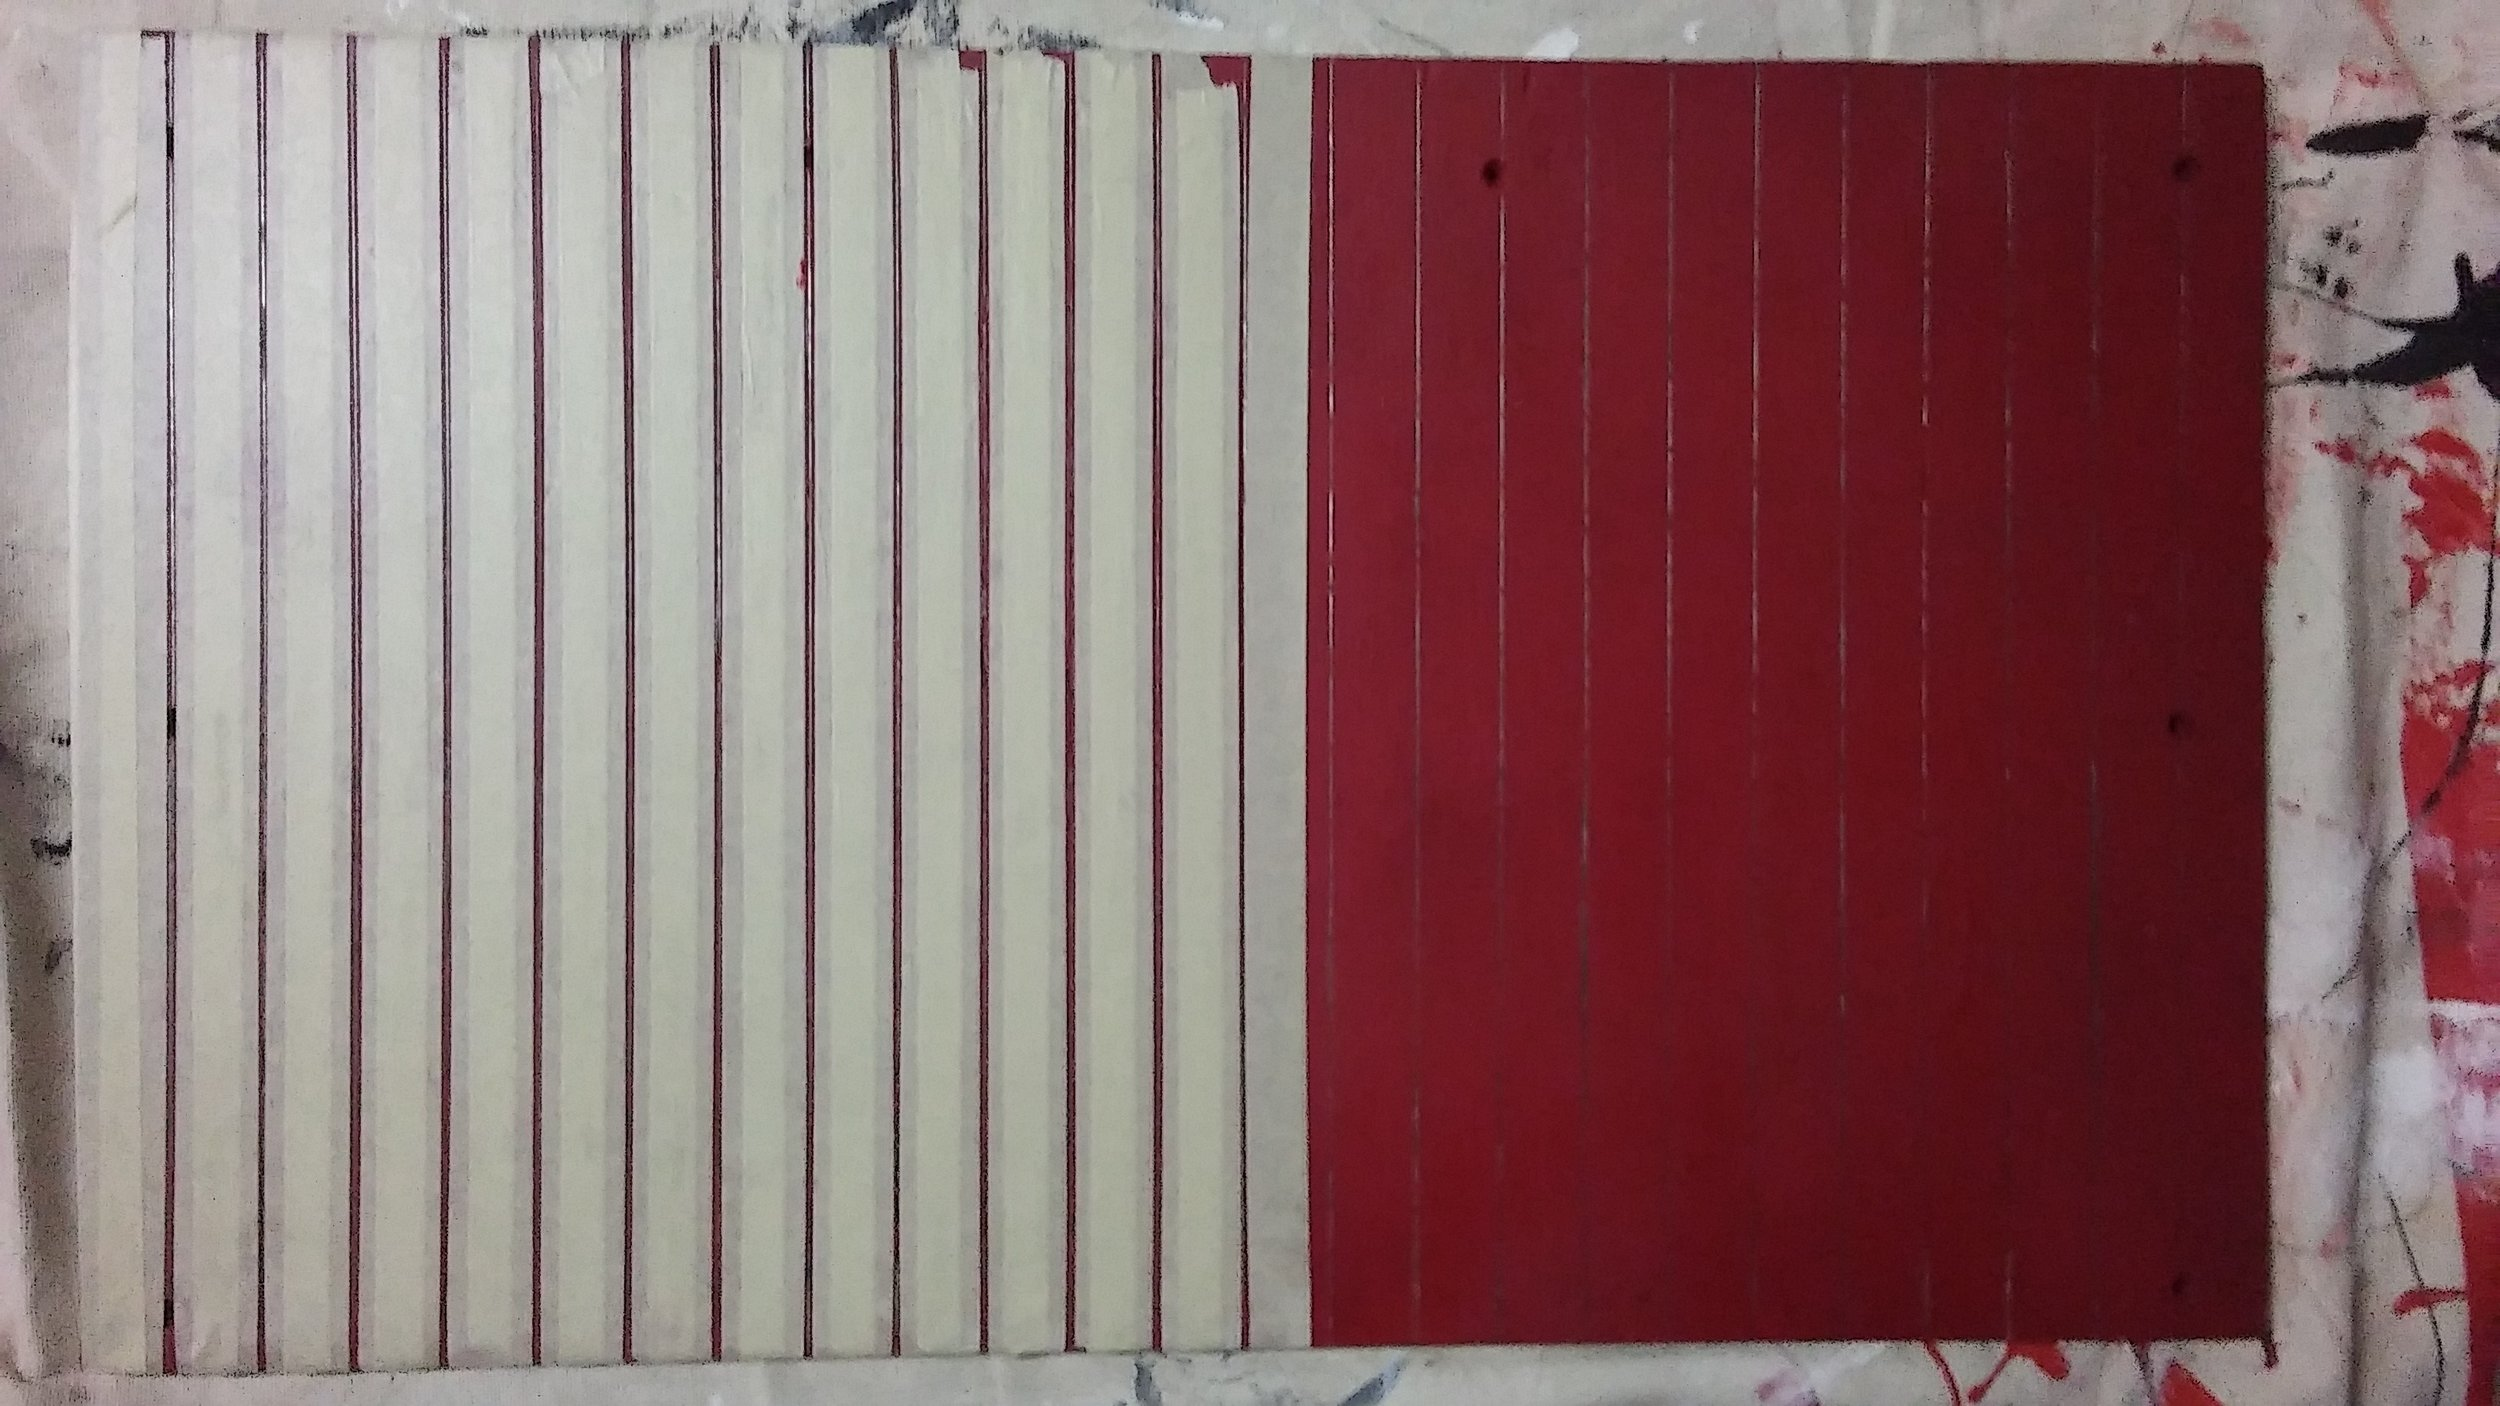 First coat of red paint is on and tape is being applied to create the stencil for the edges of the boards which will be painted with a darker red.